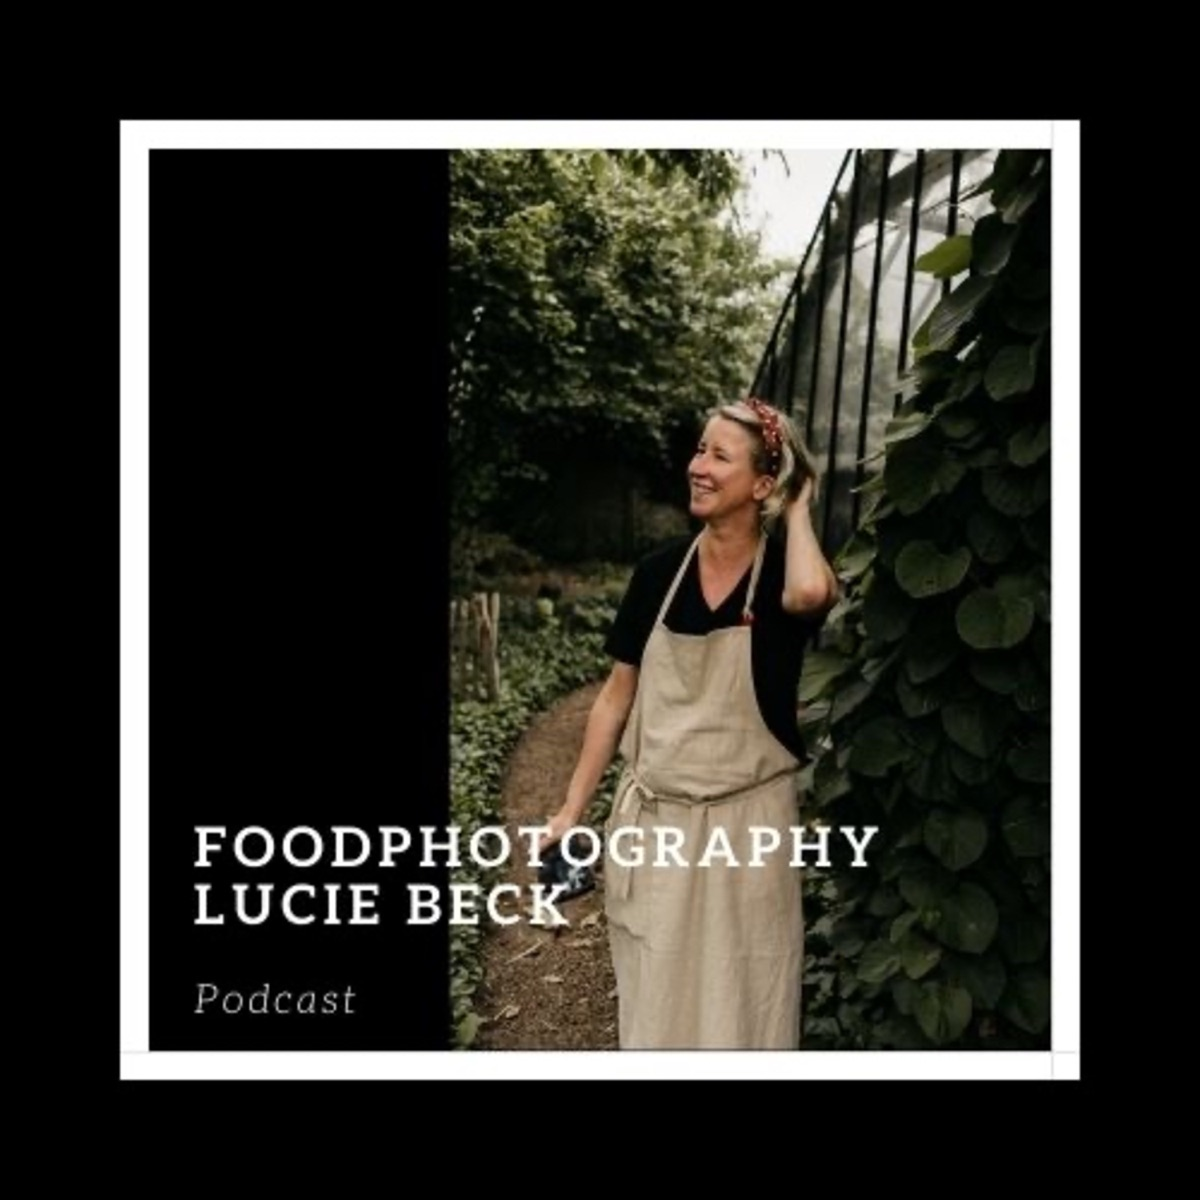 Foodphotography Lucie Beck